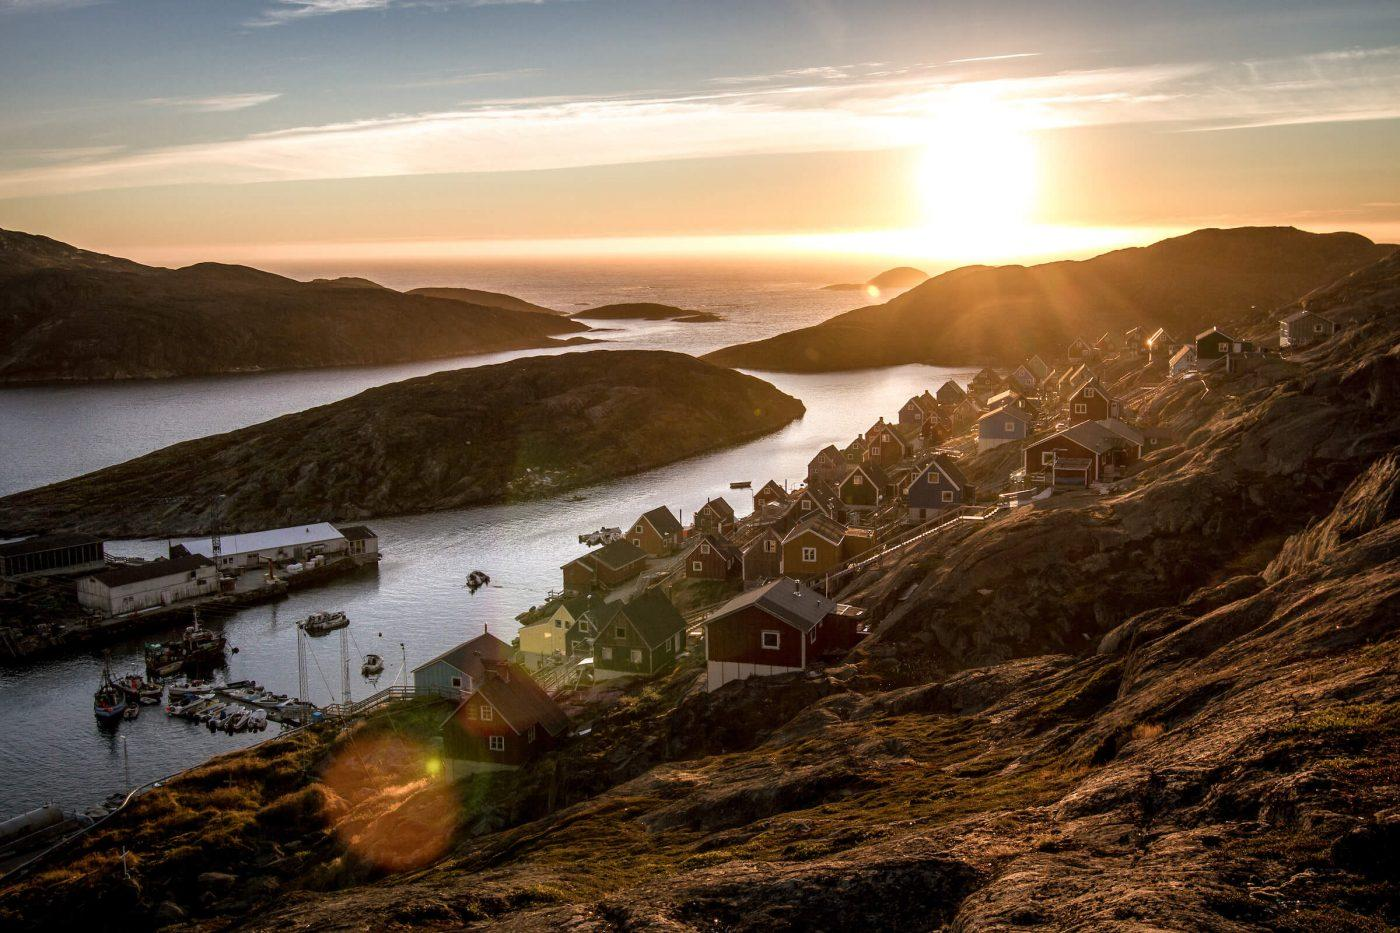 Kangaamiut in Greenland at sunset. Photo by Mads Pihl 2